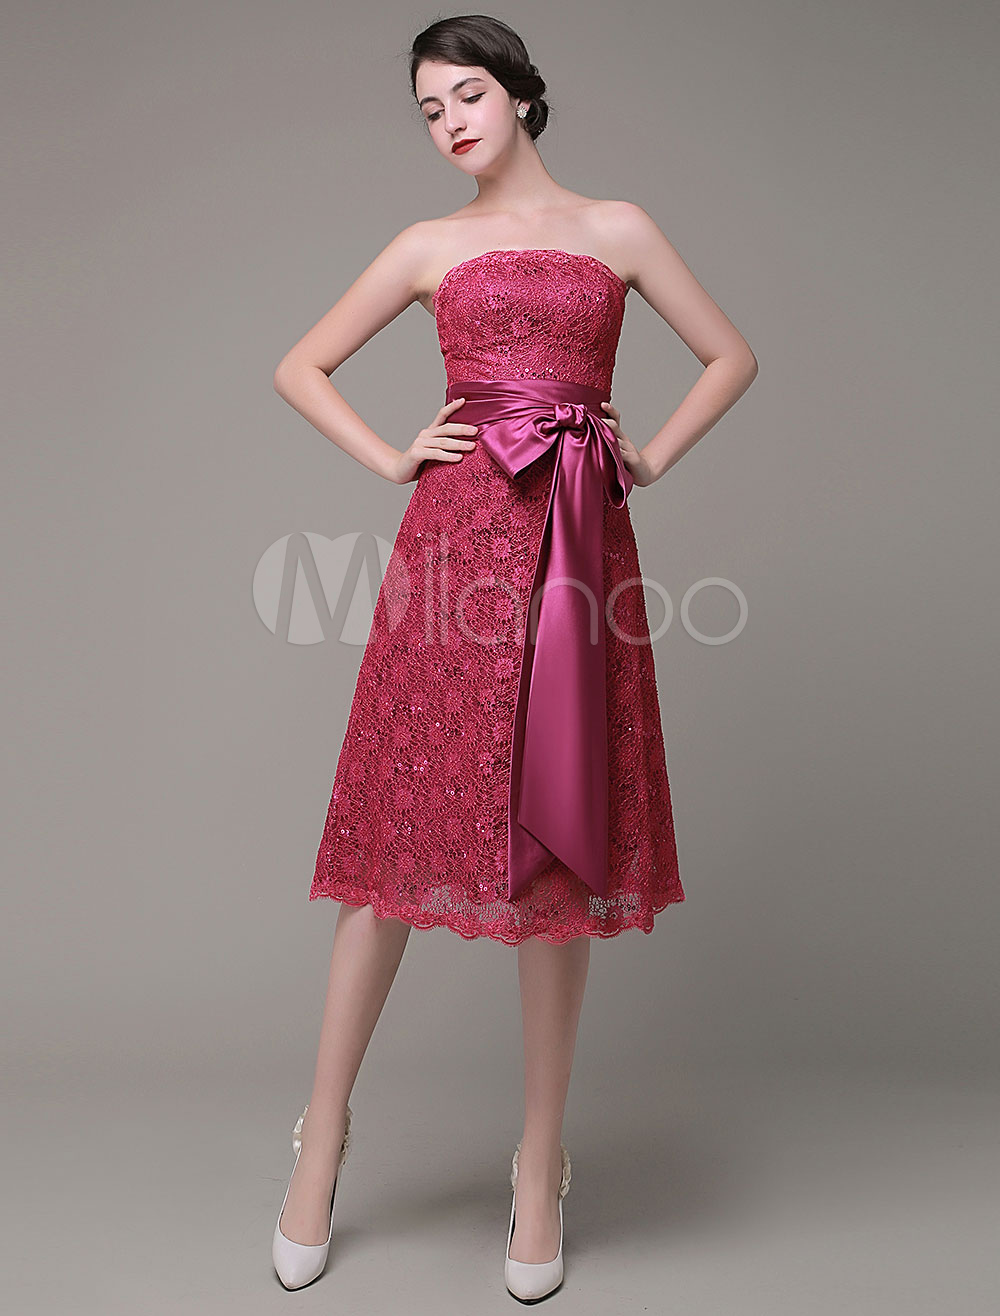 Buy Strapless Bridesmaid Dress A-Line Lace Sequined Satin Sash Bow Knee-Length Homecoming Dress Milanoo for $108.89 in Milanoo store